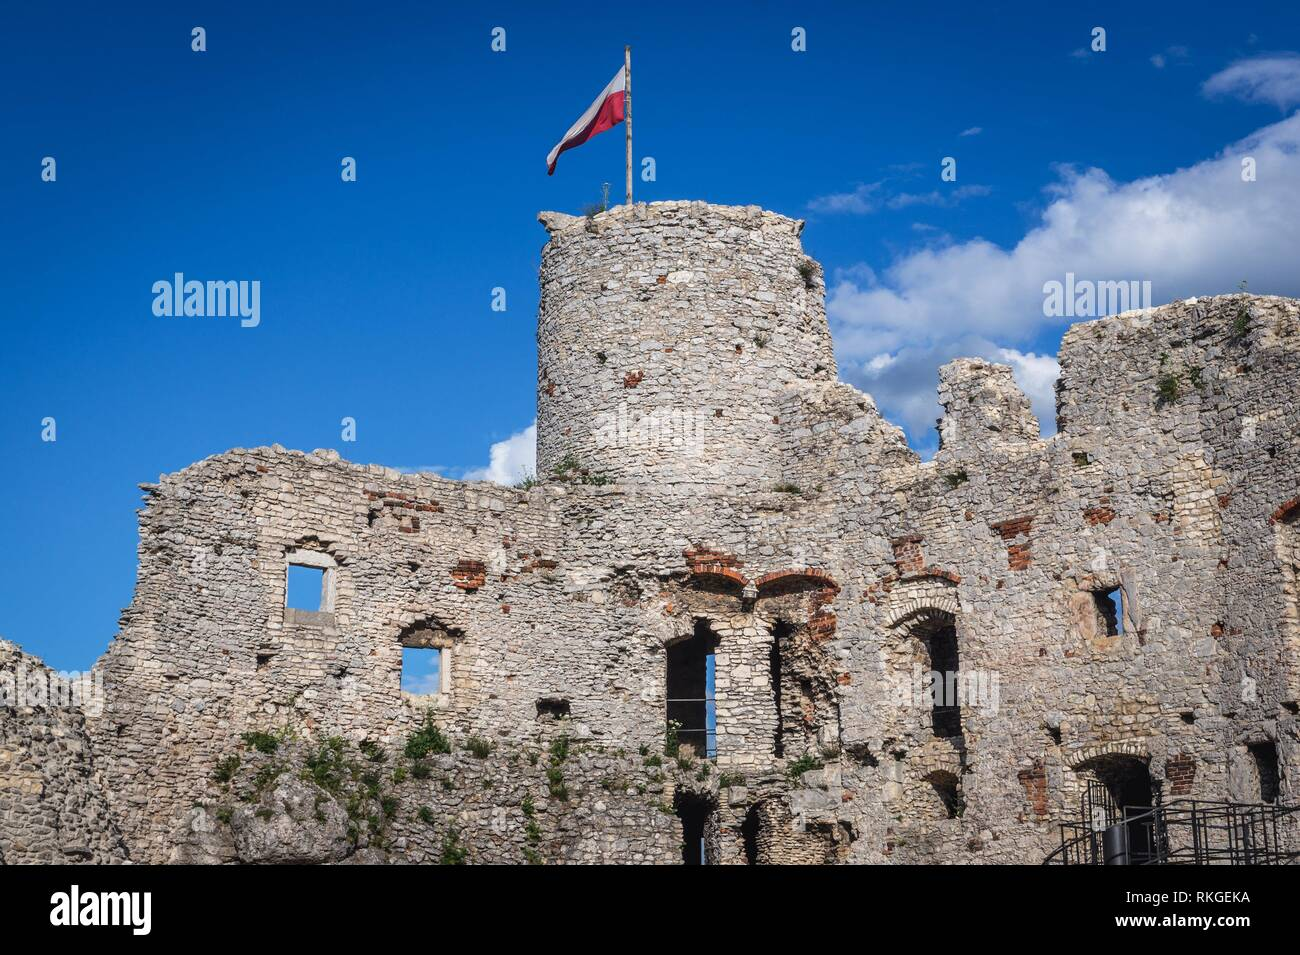 Ruins of Ogrodzieniec Castle in Podzamcze village, part of the Eagles Nests castle system in Silesian Voivodeship of southern Poland. Stock Photo